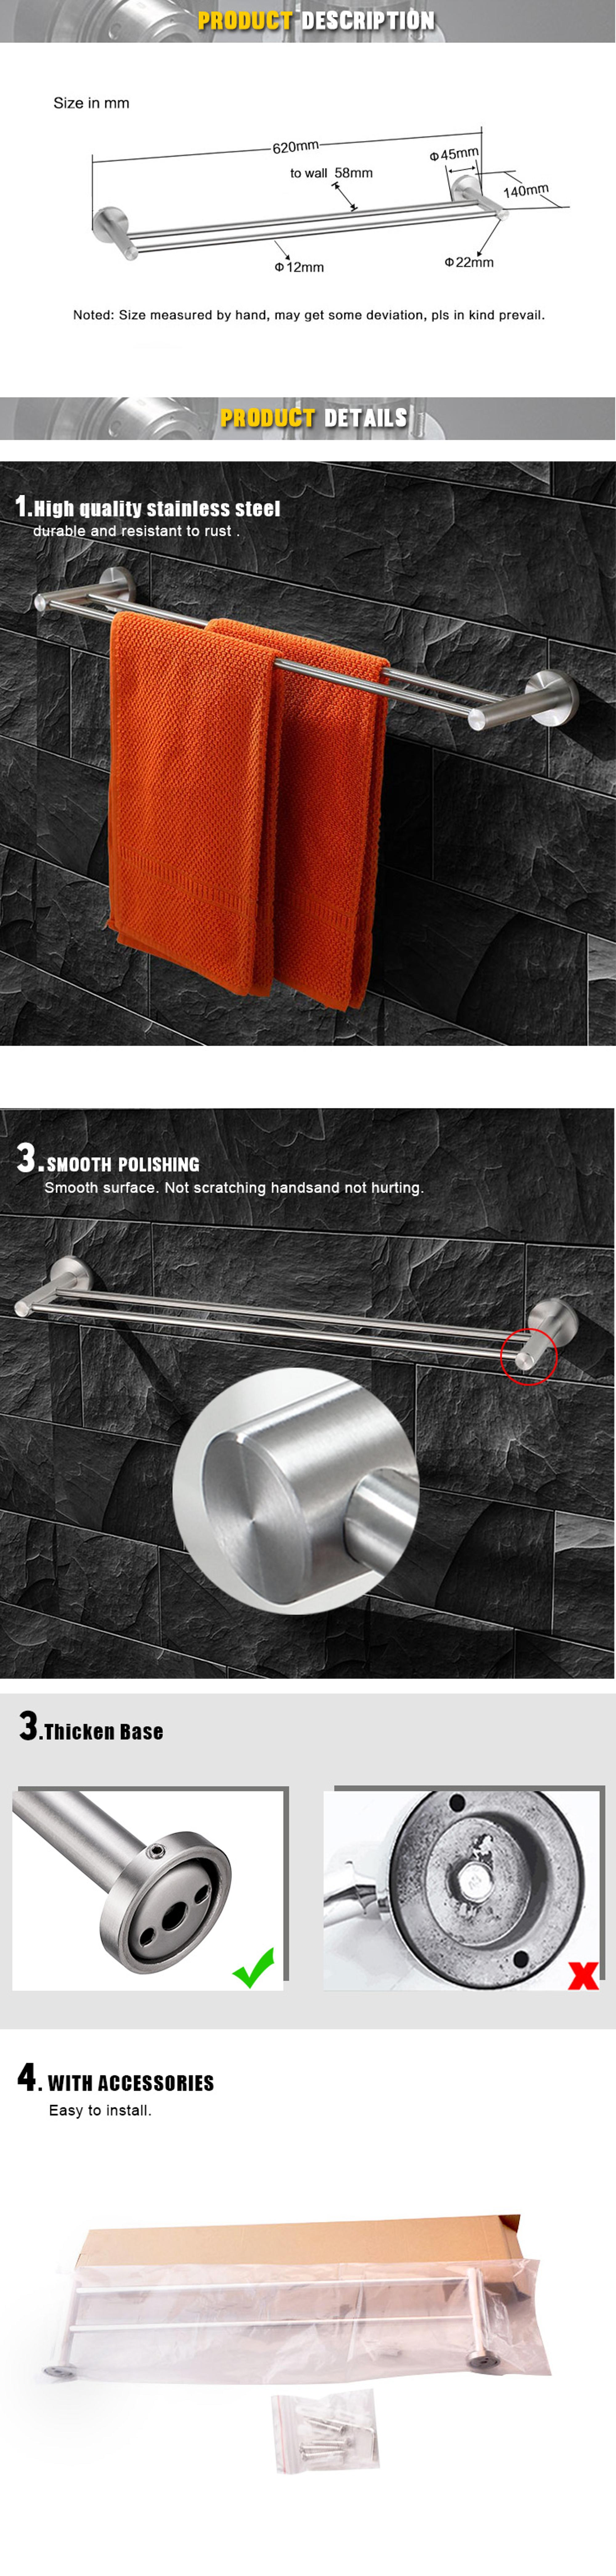 Modern bathroom decorative bronze stainless steel bath double hand towel bar